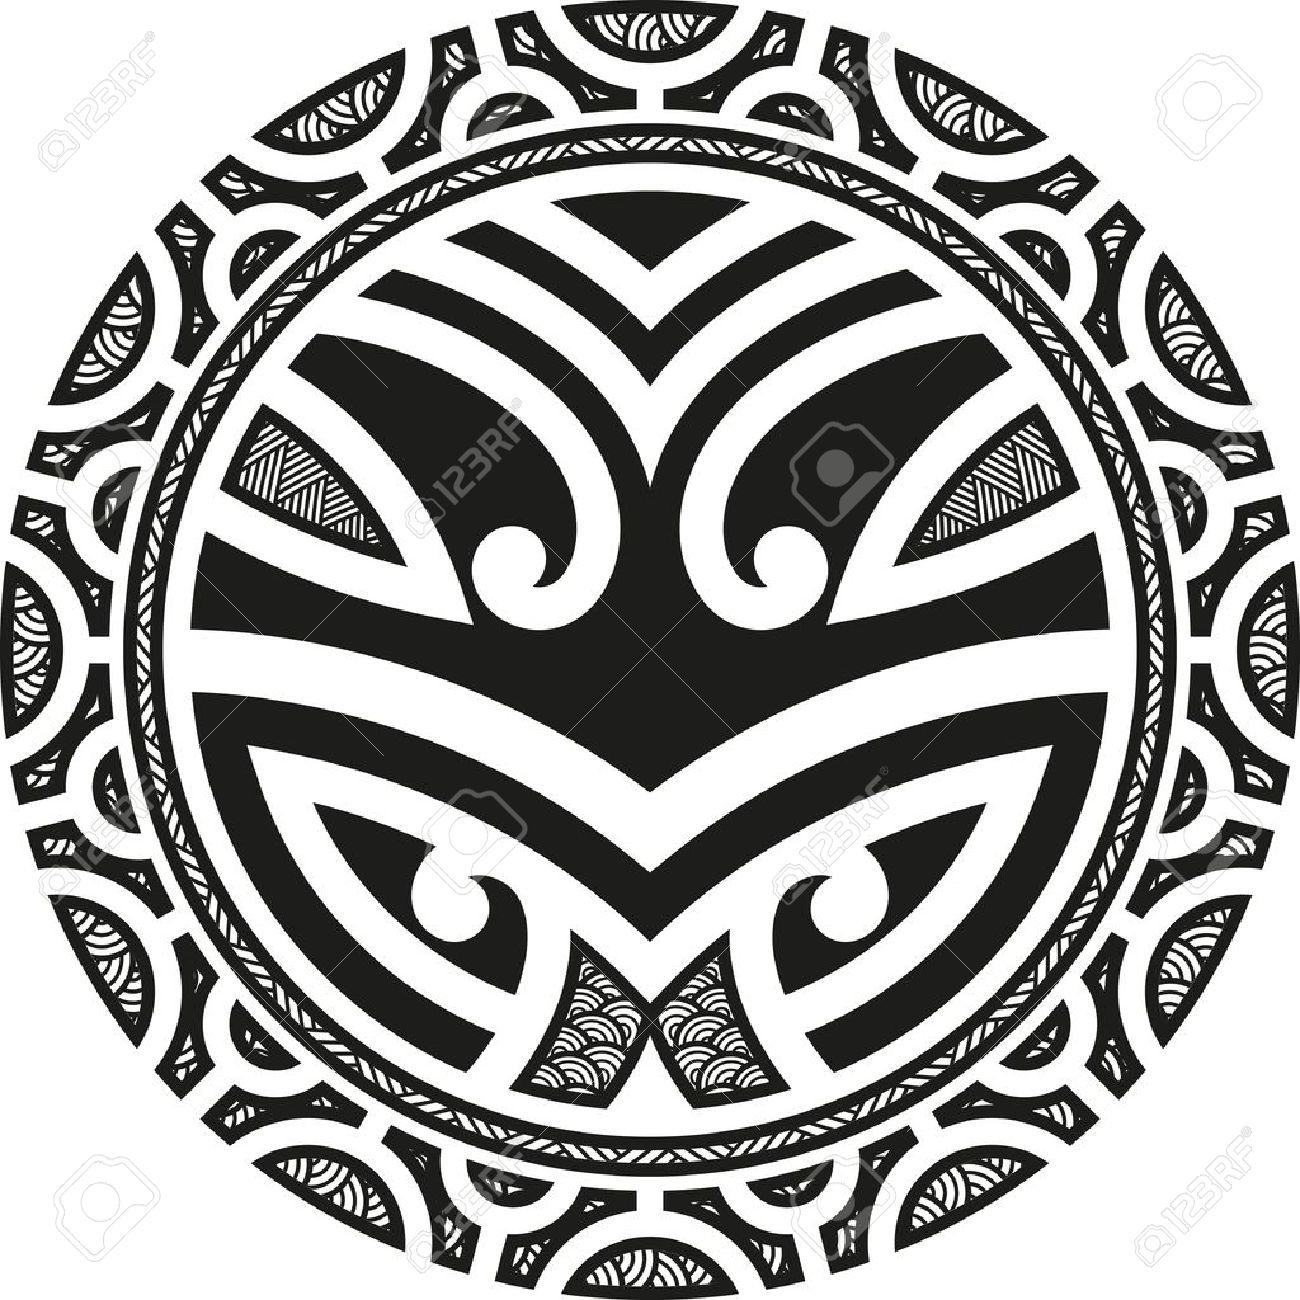 3ee3f154a Traditional Maori Taniwha Tattoo Design Royalty Free Cliparts ...